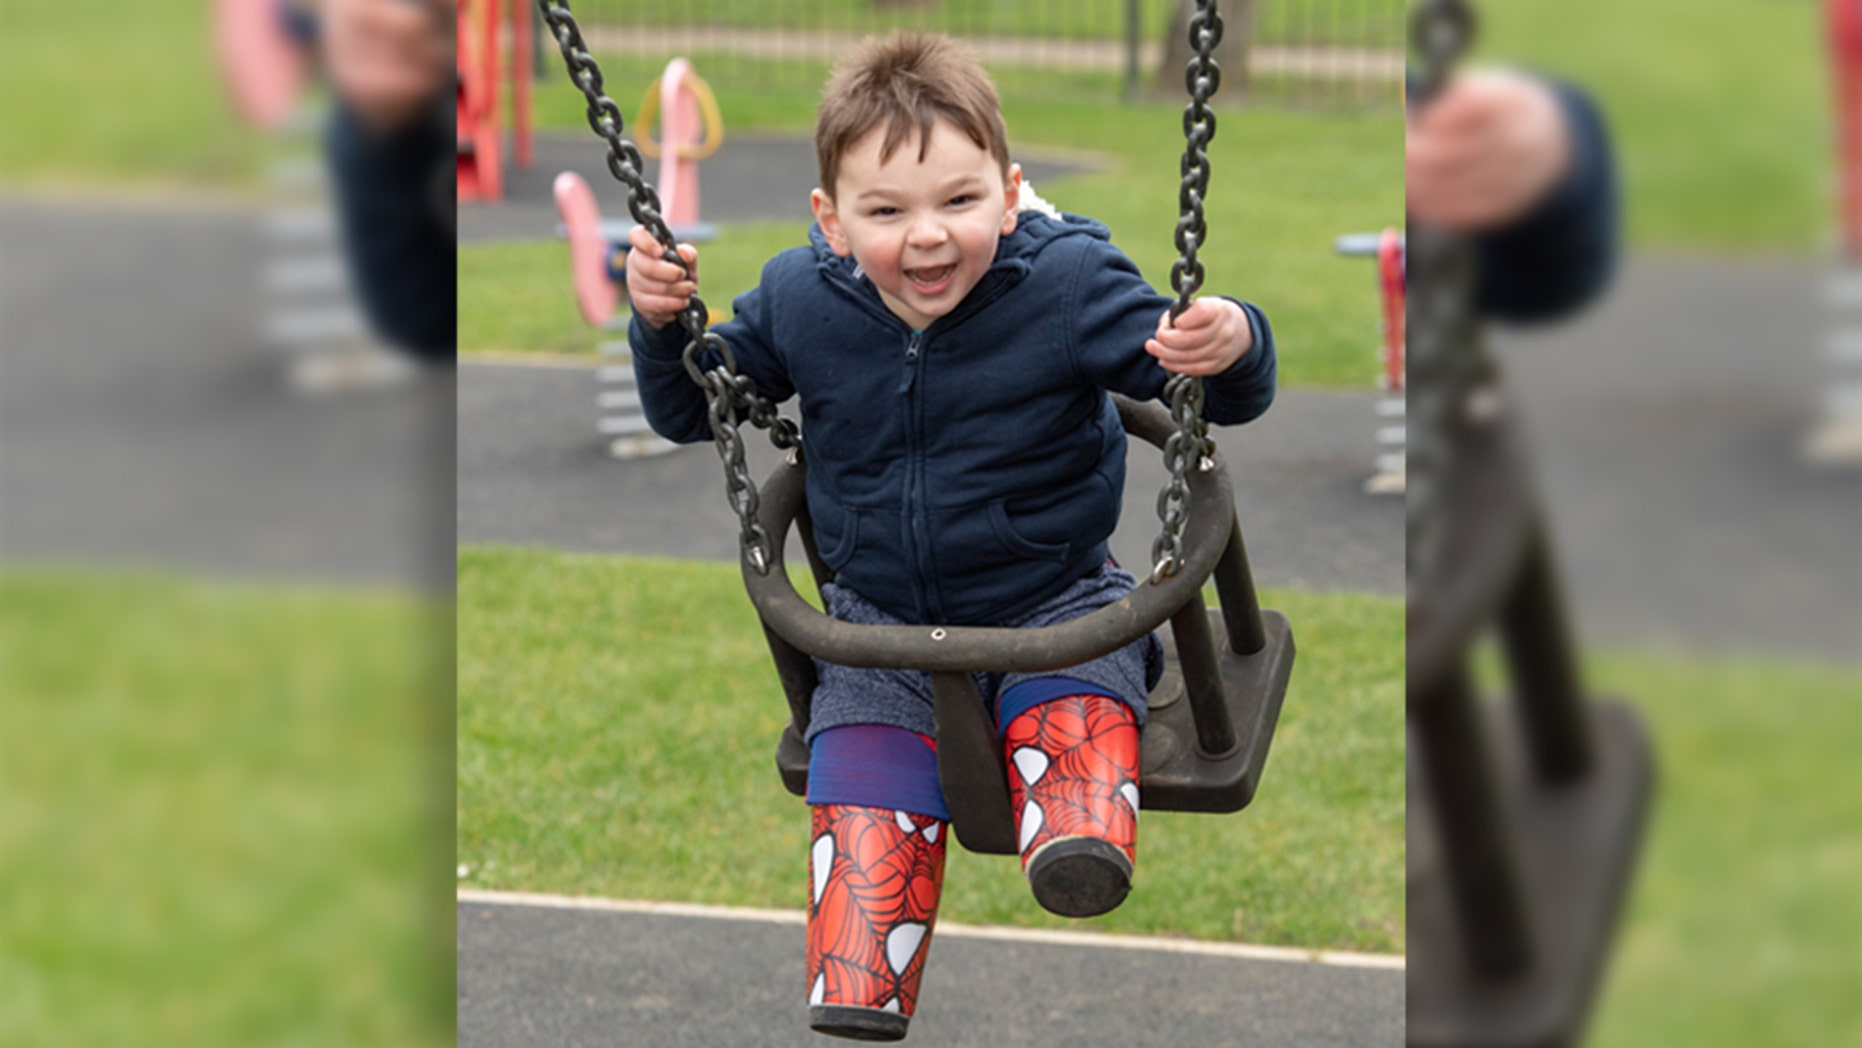 Tony was initial brought to a sanatorium with mixed fractures, organ disaster and sepsis during 41 days old.